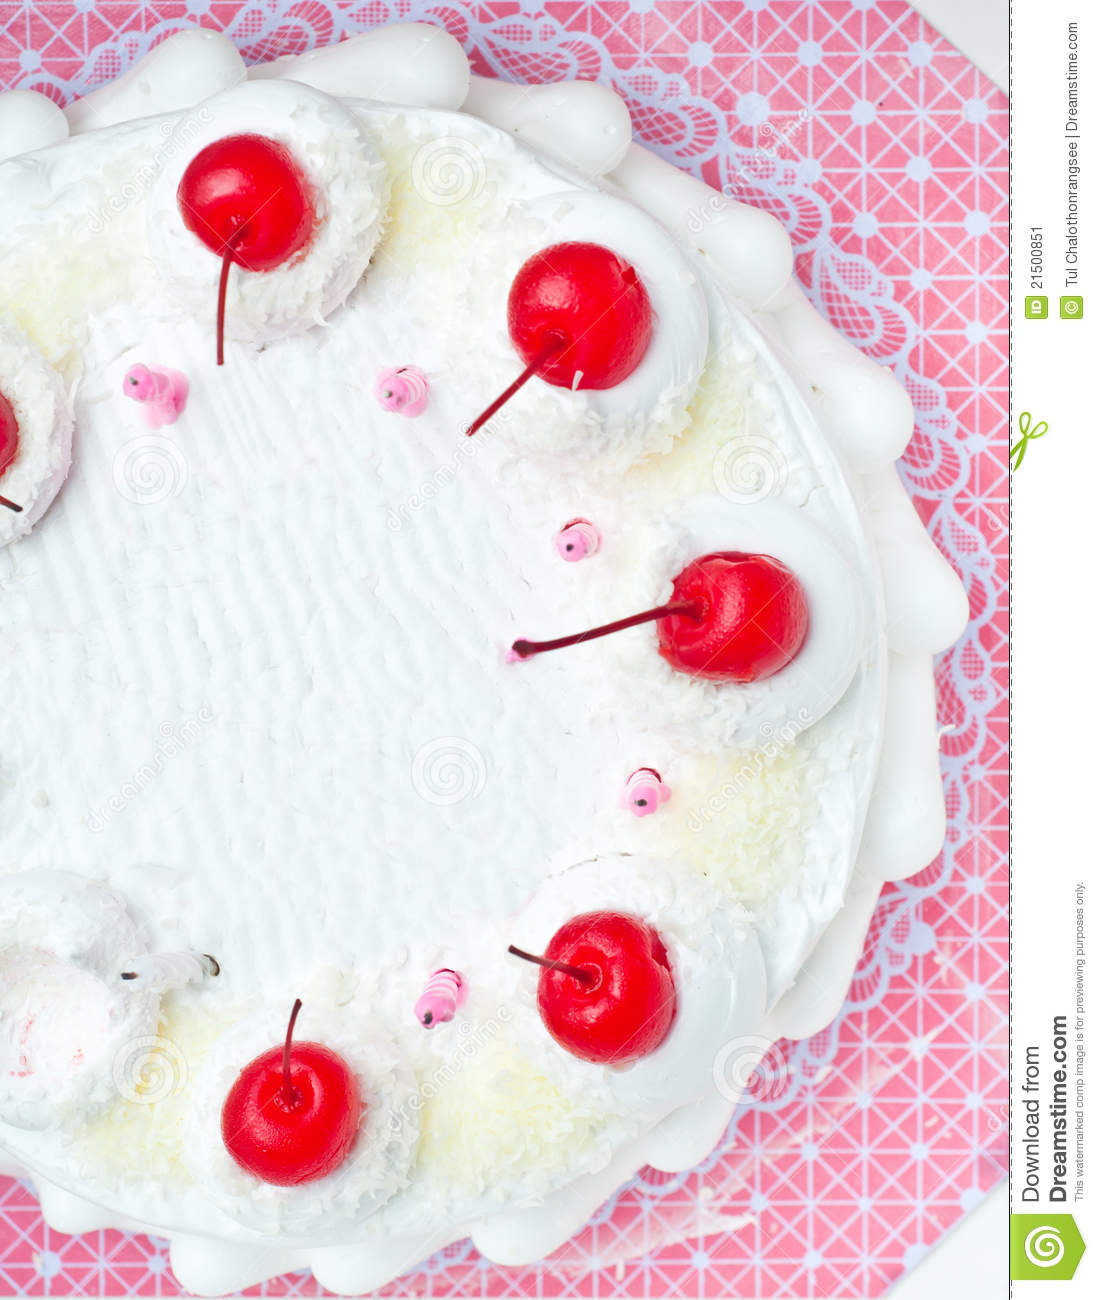 Top View Of White Cake With Cherry Topping Stock Image ...